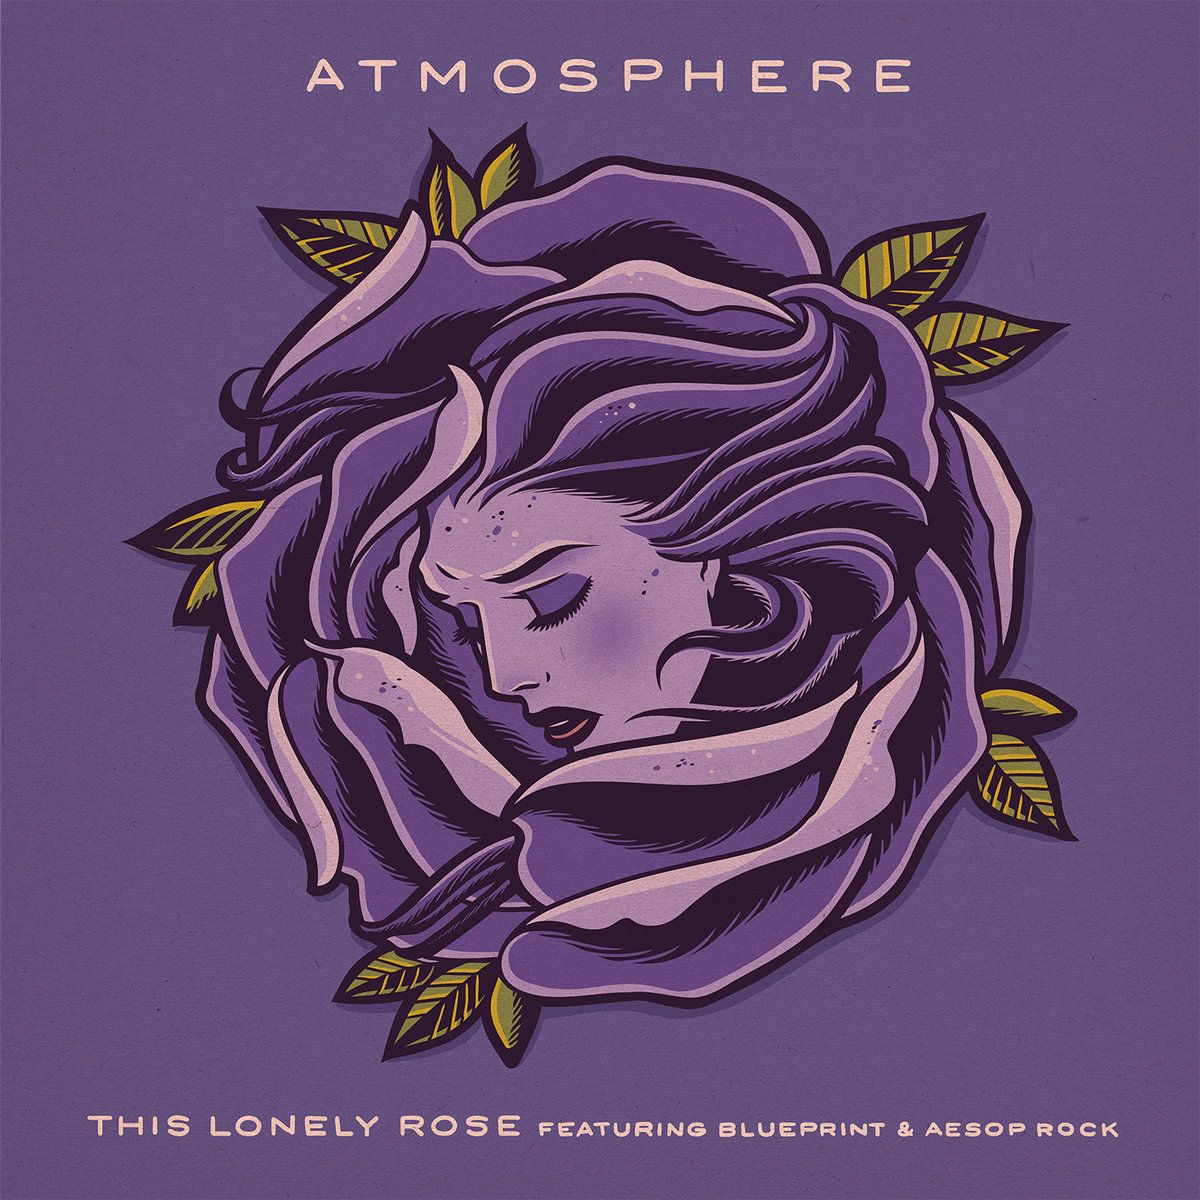 Artist atmosphere album single song this lonely rose feat artist atmosphere album single song this lonely rose malvernweather Gallery